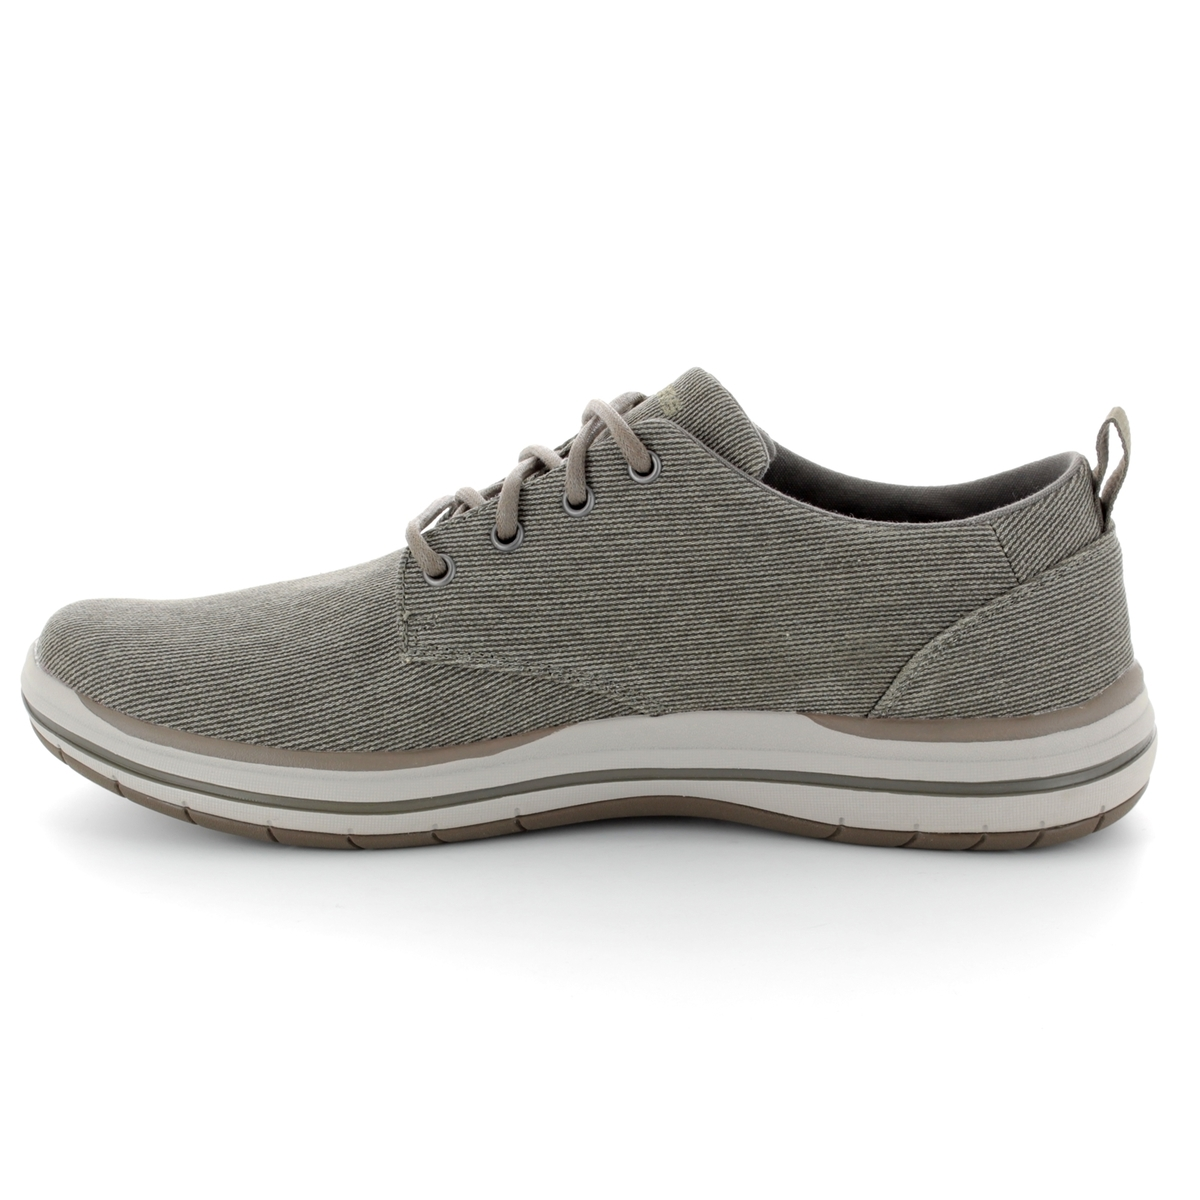 Where Are Superfit Shoes Made